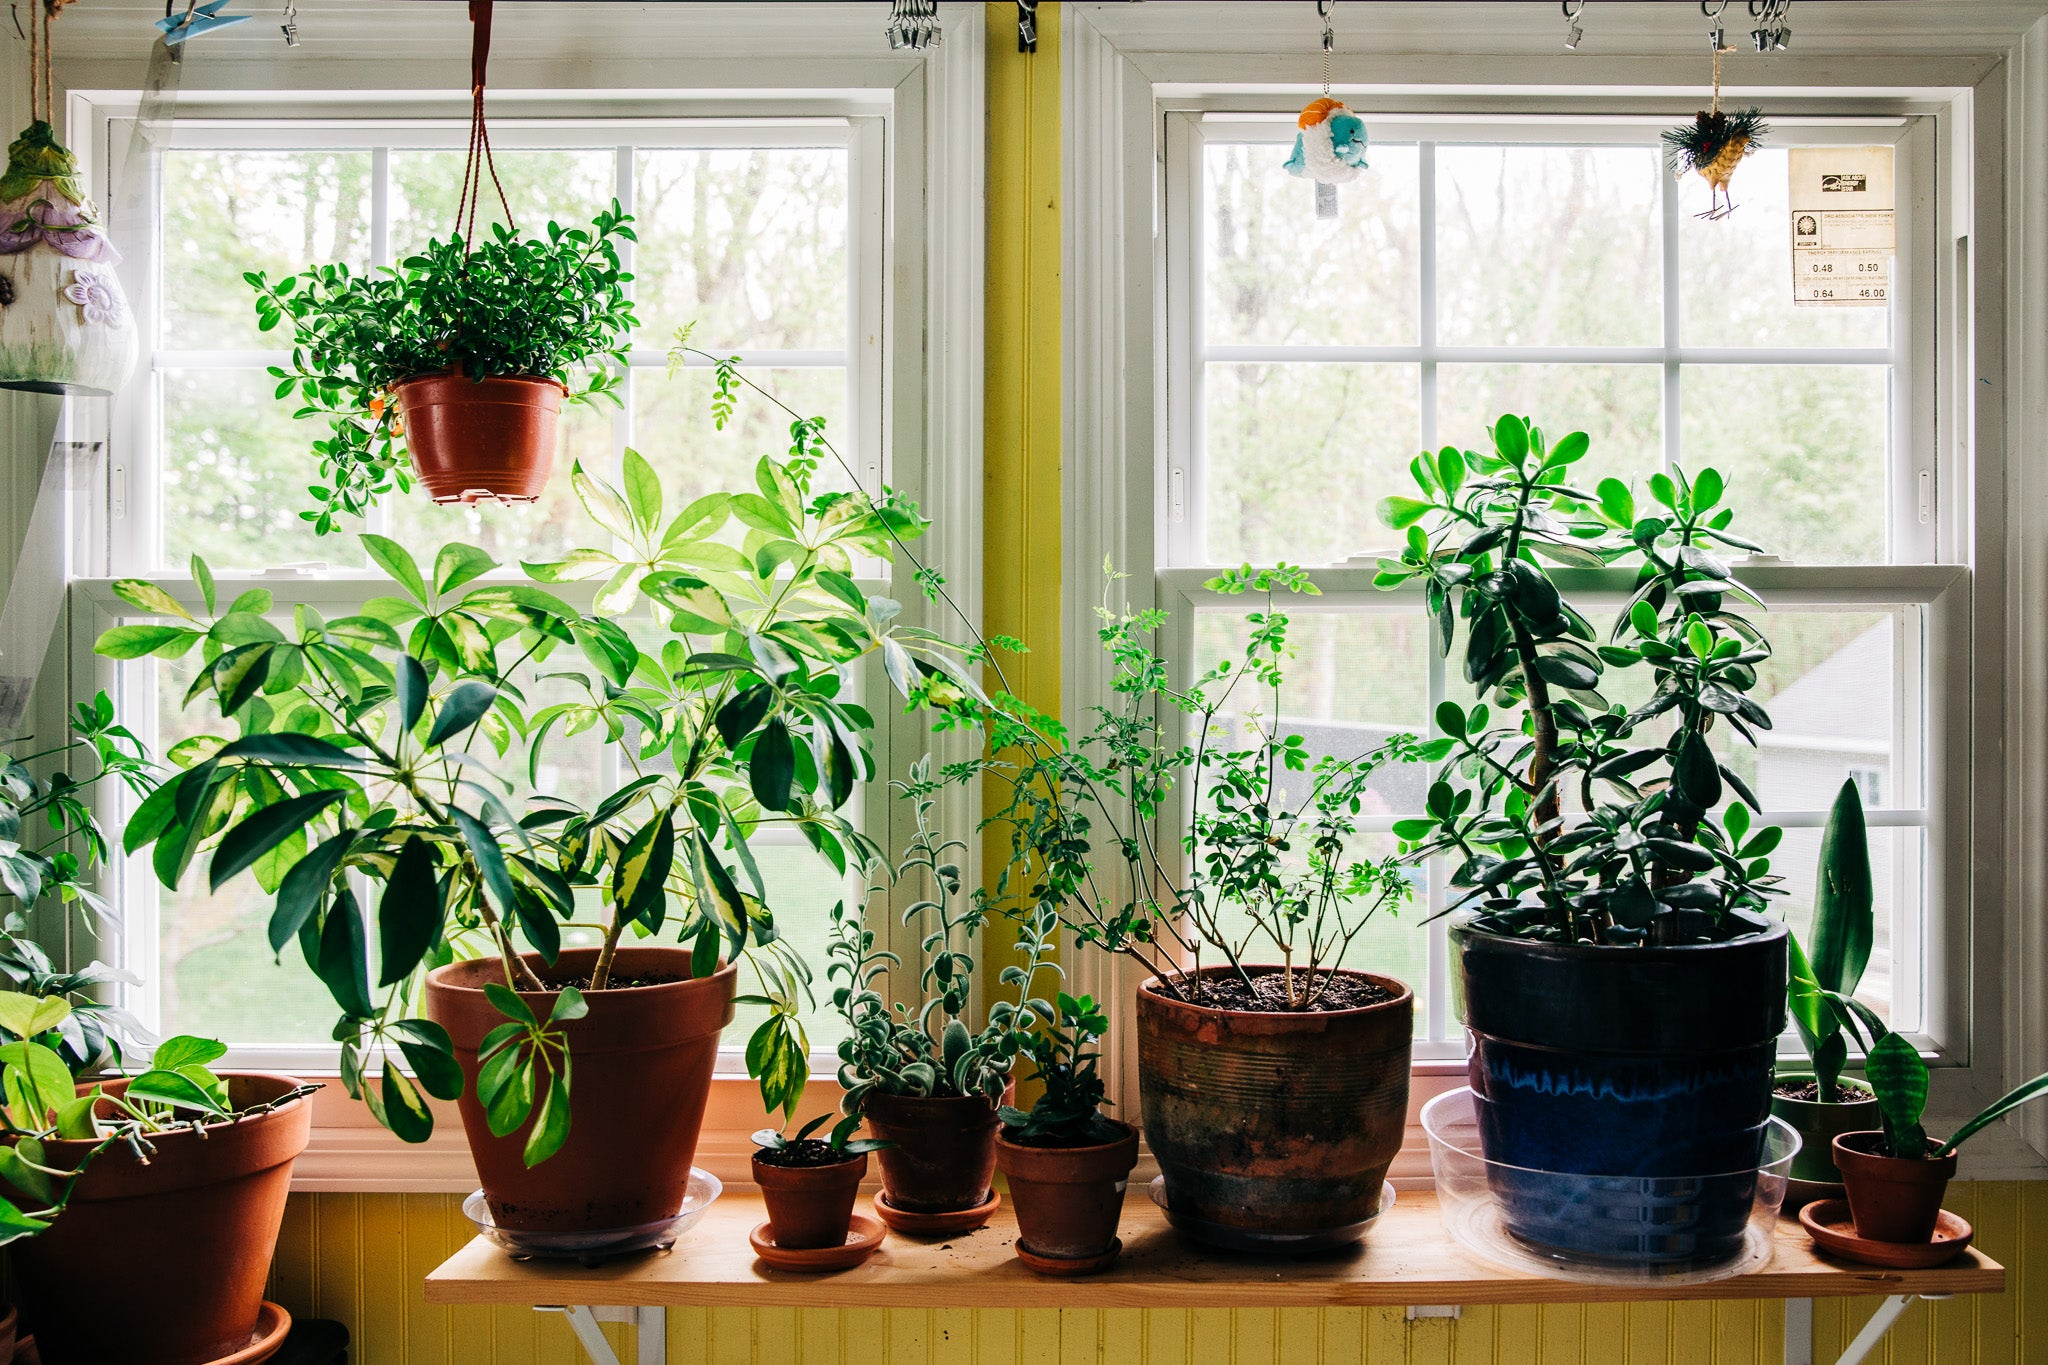 Need #plantshelfie inspiration? Here are the best submissions from PopSci readers